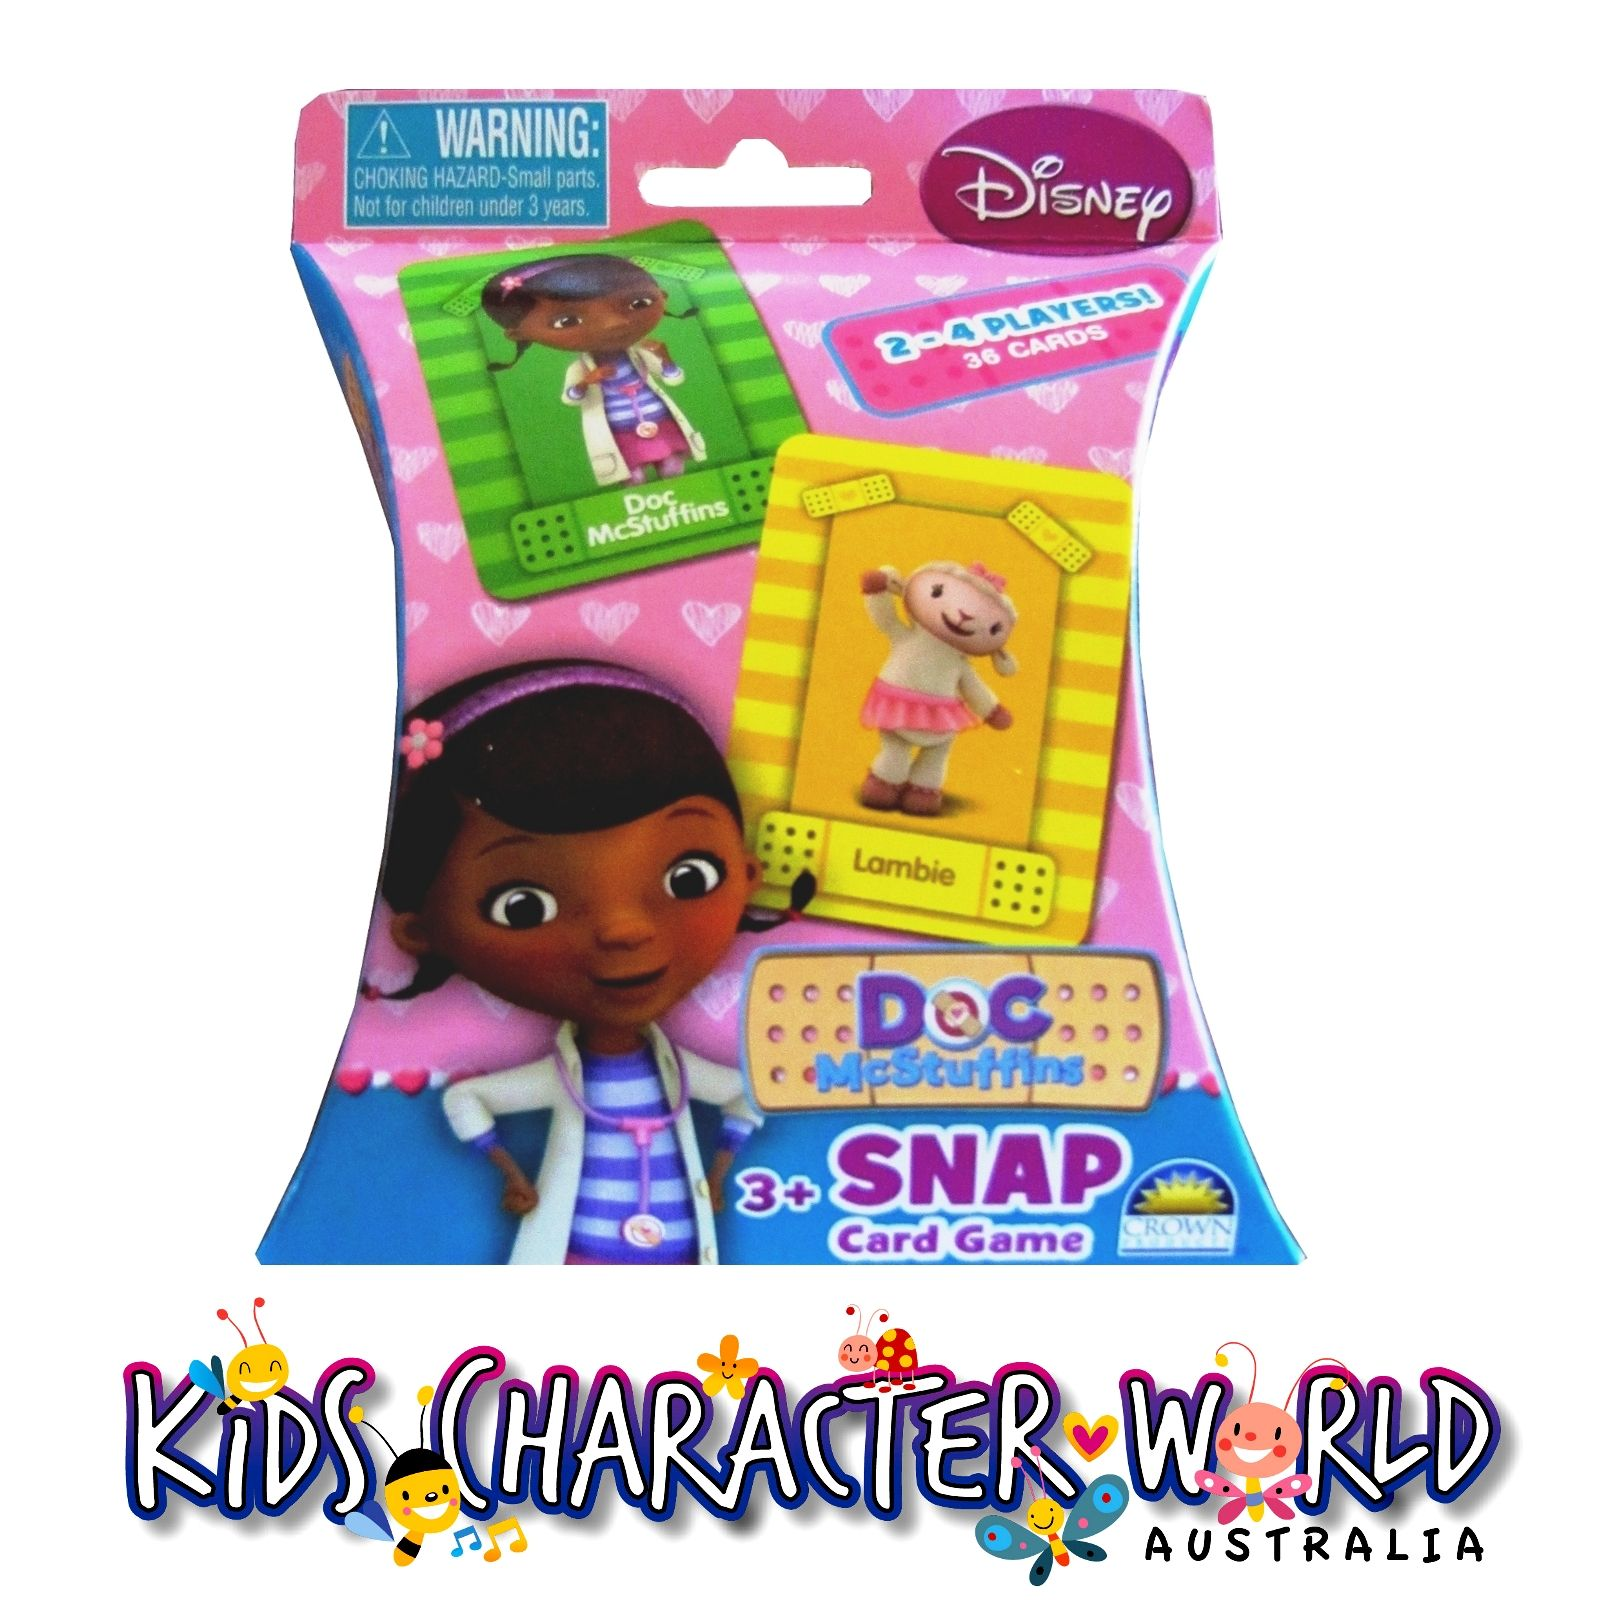 Doc McStuffins Snap Card Game $7.95 (eBay Store: kidscharacterworld2013 email: kidscharacterworld@live.com.au) http://www.ebay.com.au/itm/Doc-McStuffins-SNAP-Card-Game-CROWN-New-Kids-Girls-Licensed-BNIB-/171377210663?